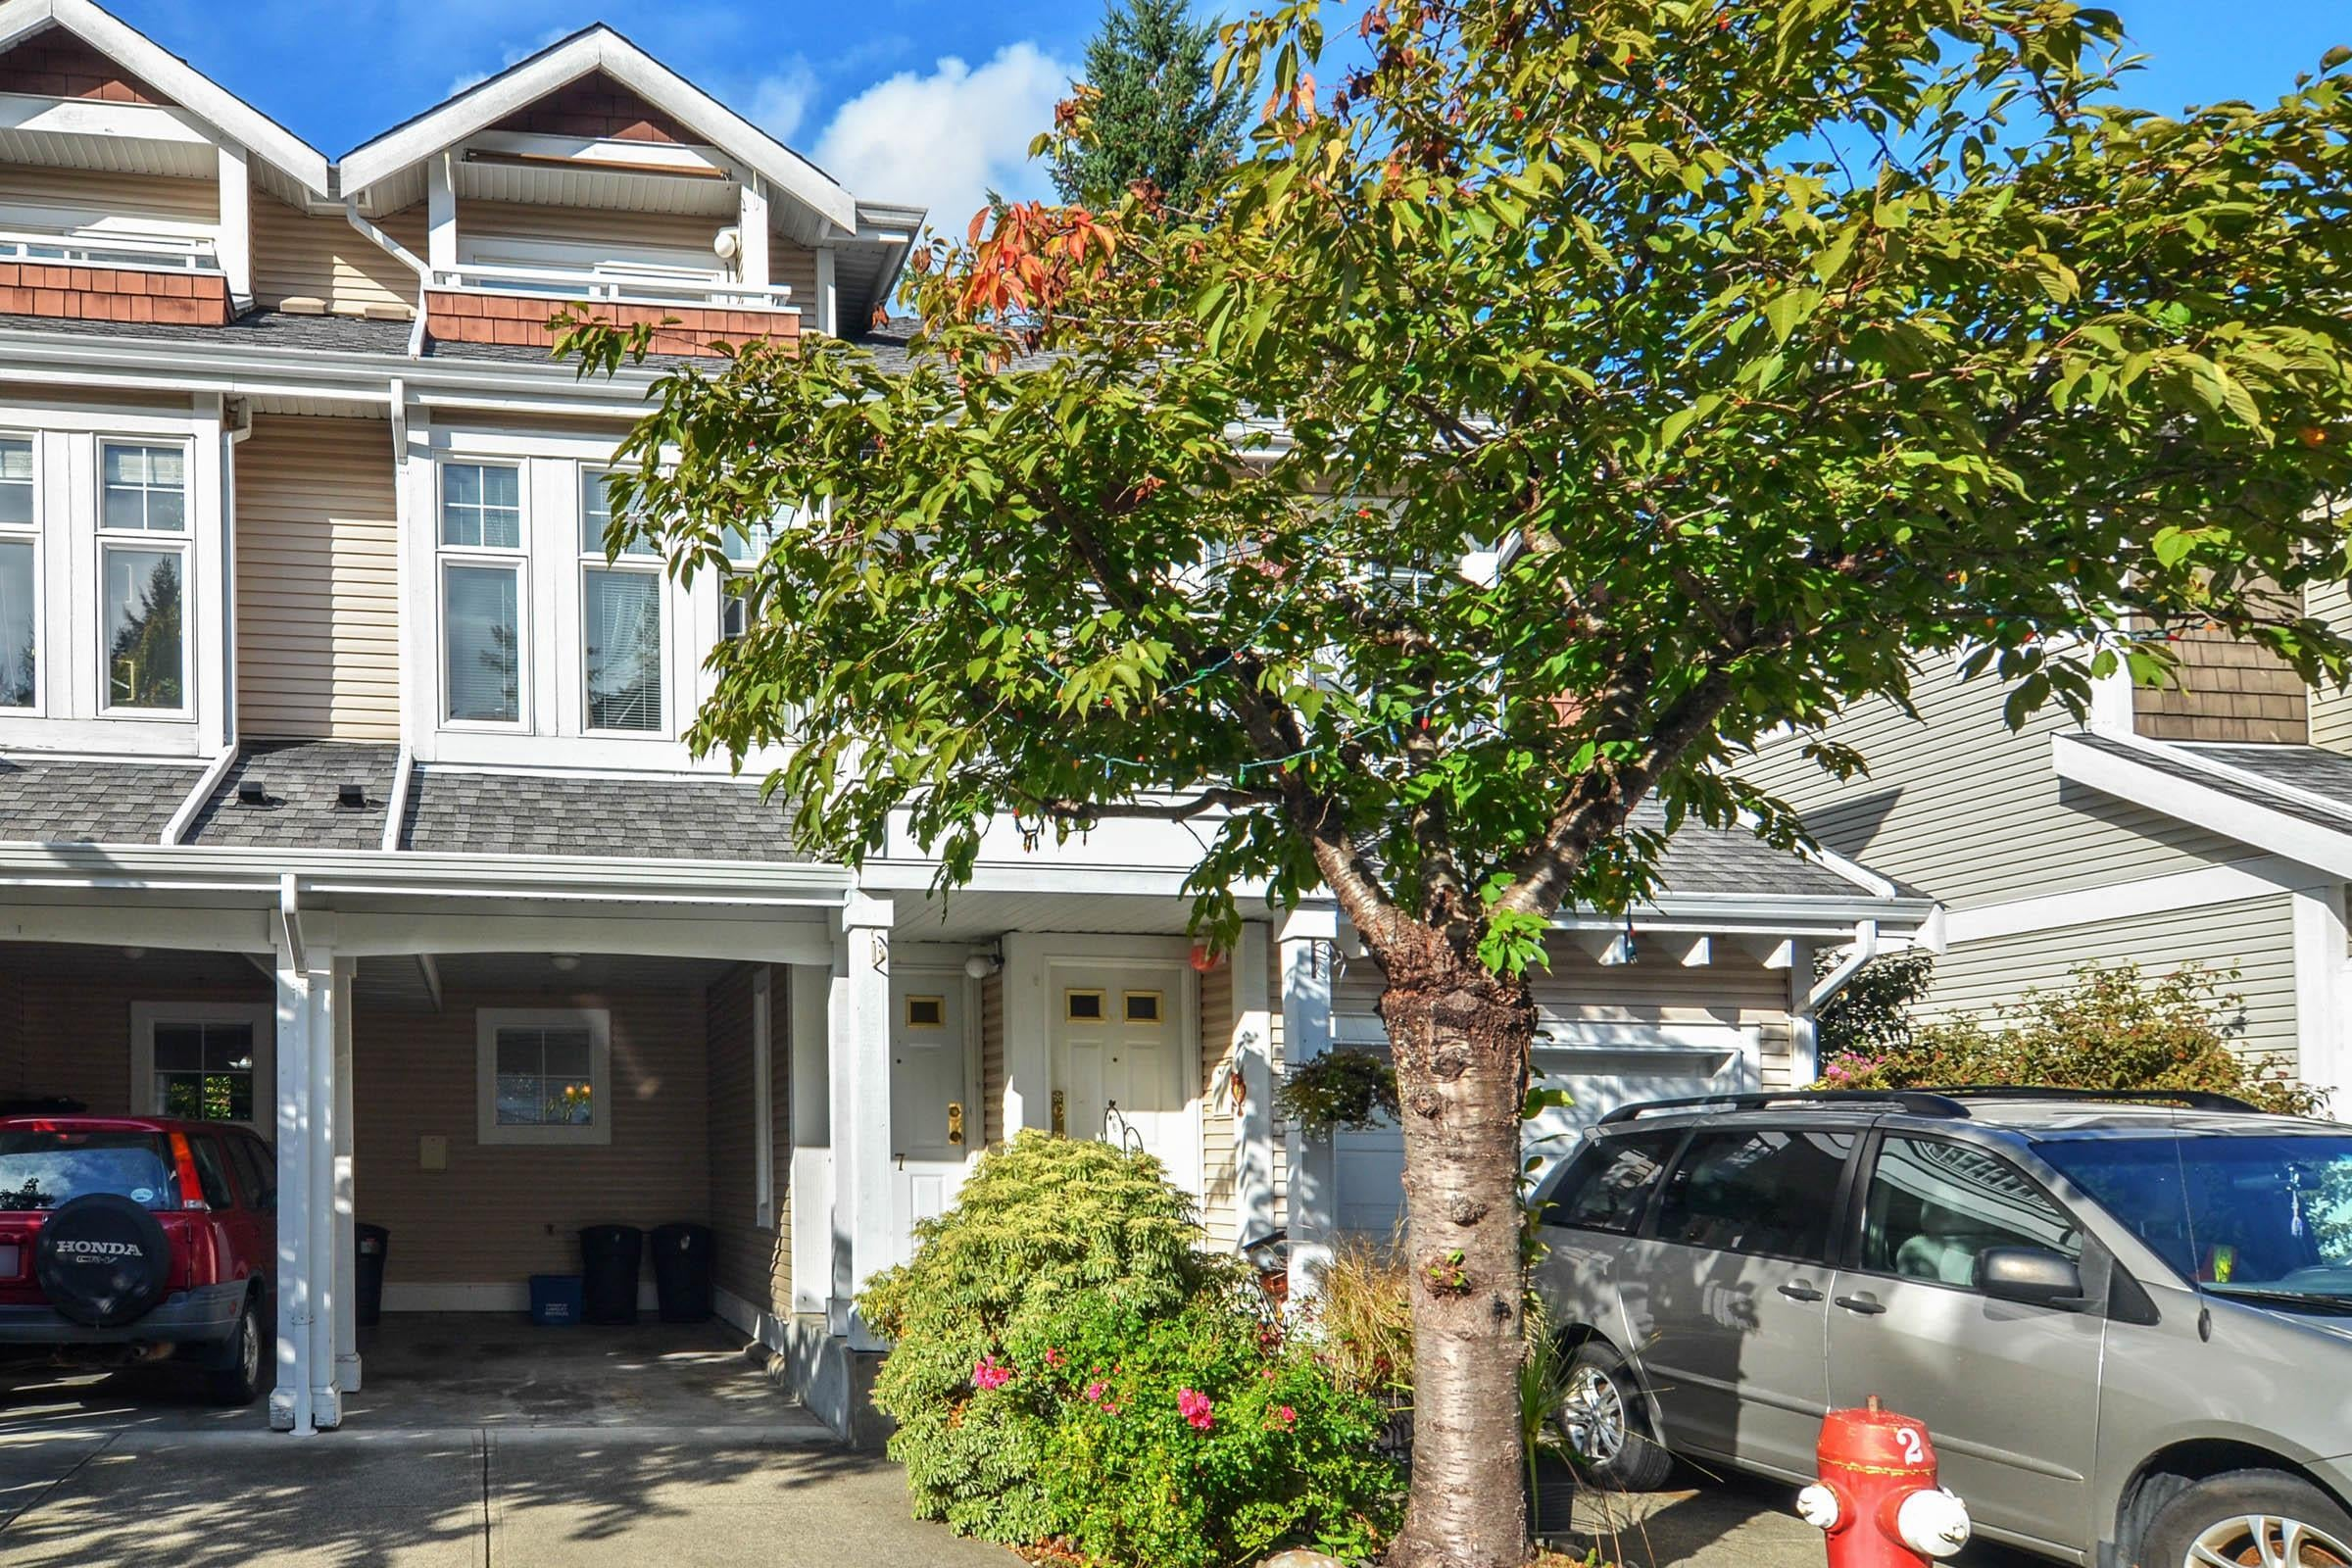 7 9036 208 STREET - Walnut Grove Townhouse for sale, 2 Bedrooms (R2623970) - #1